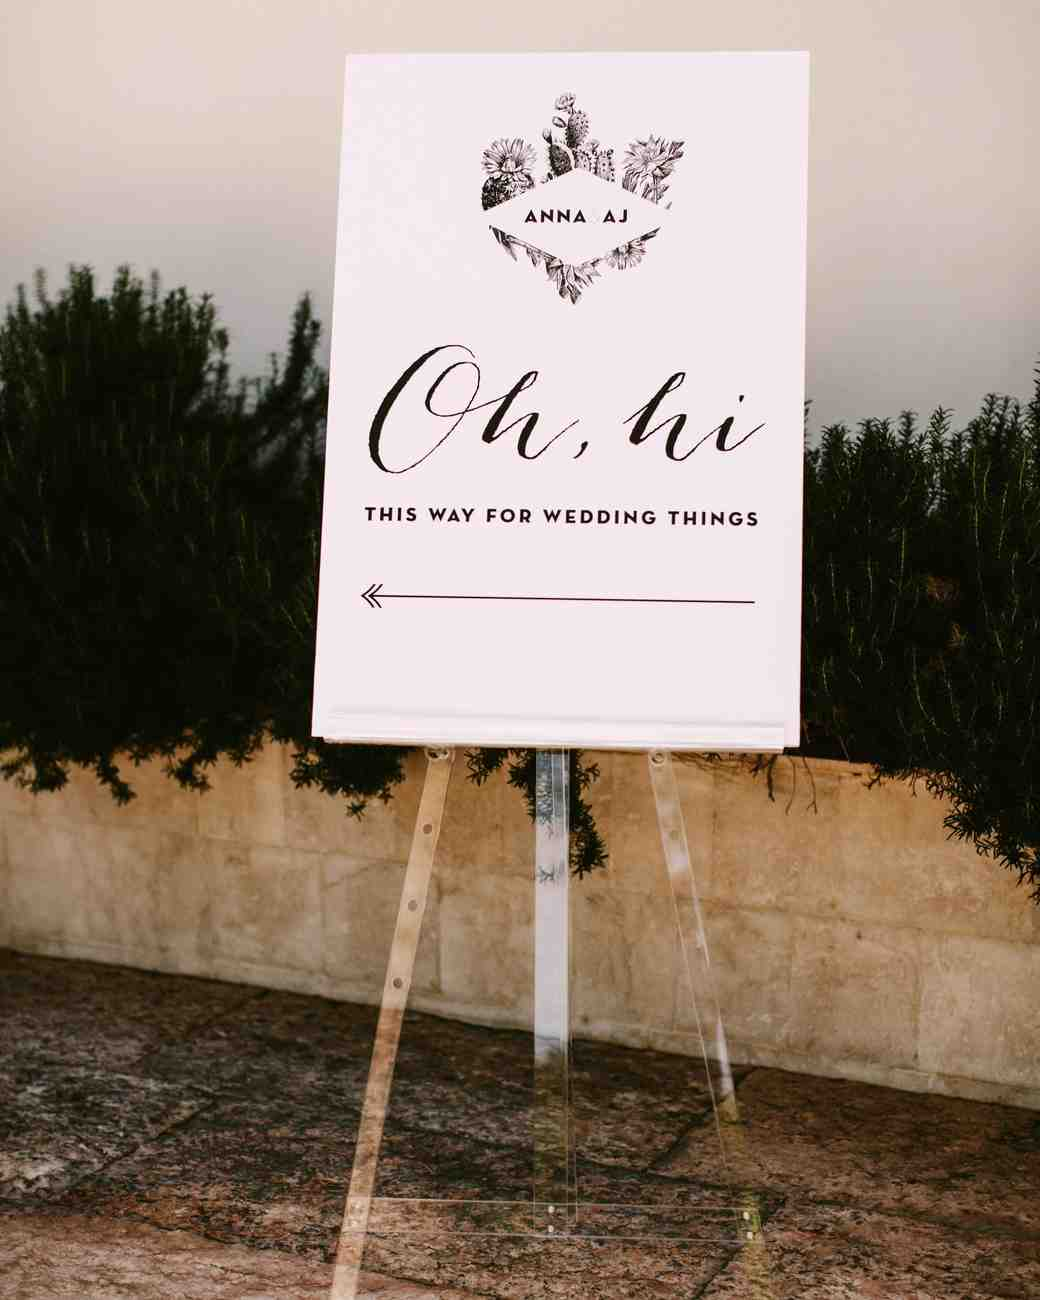 Creative Sign Ideas For Your Wedding Reception Bar – Part III Creative Sign Ideas For Your Wedding Reception Bar – Part III new images